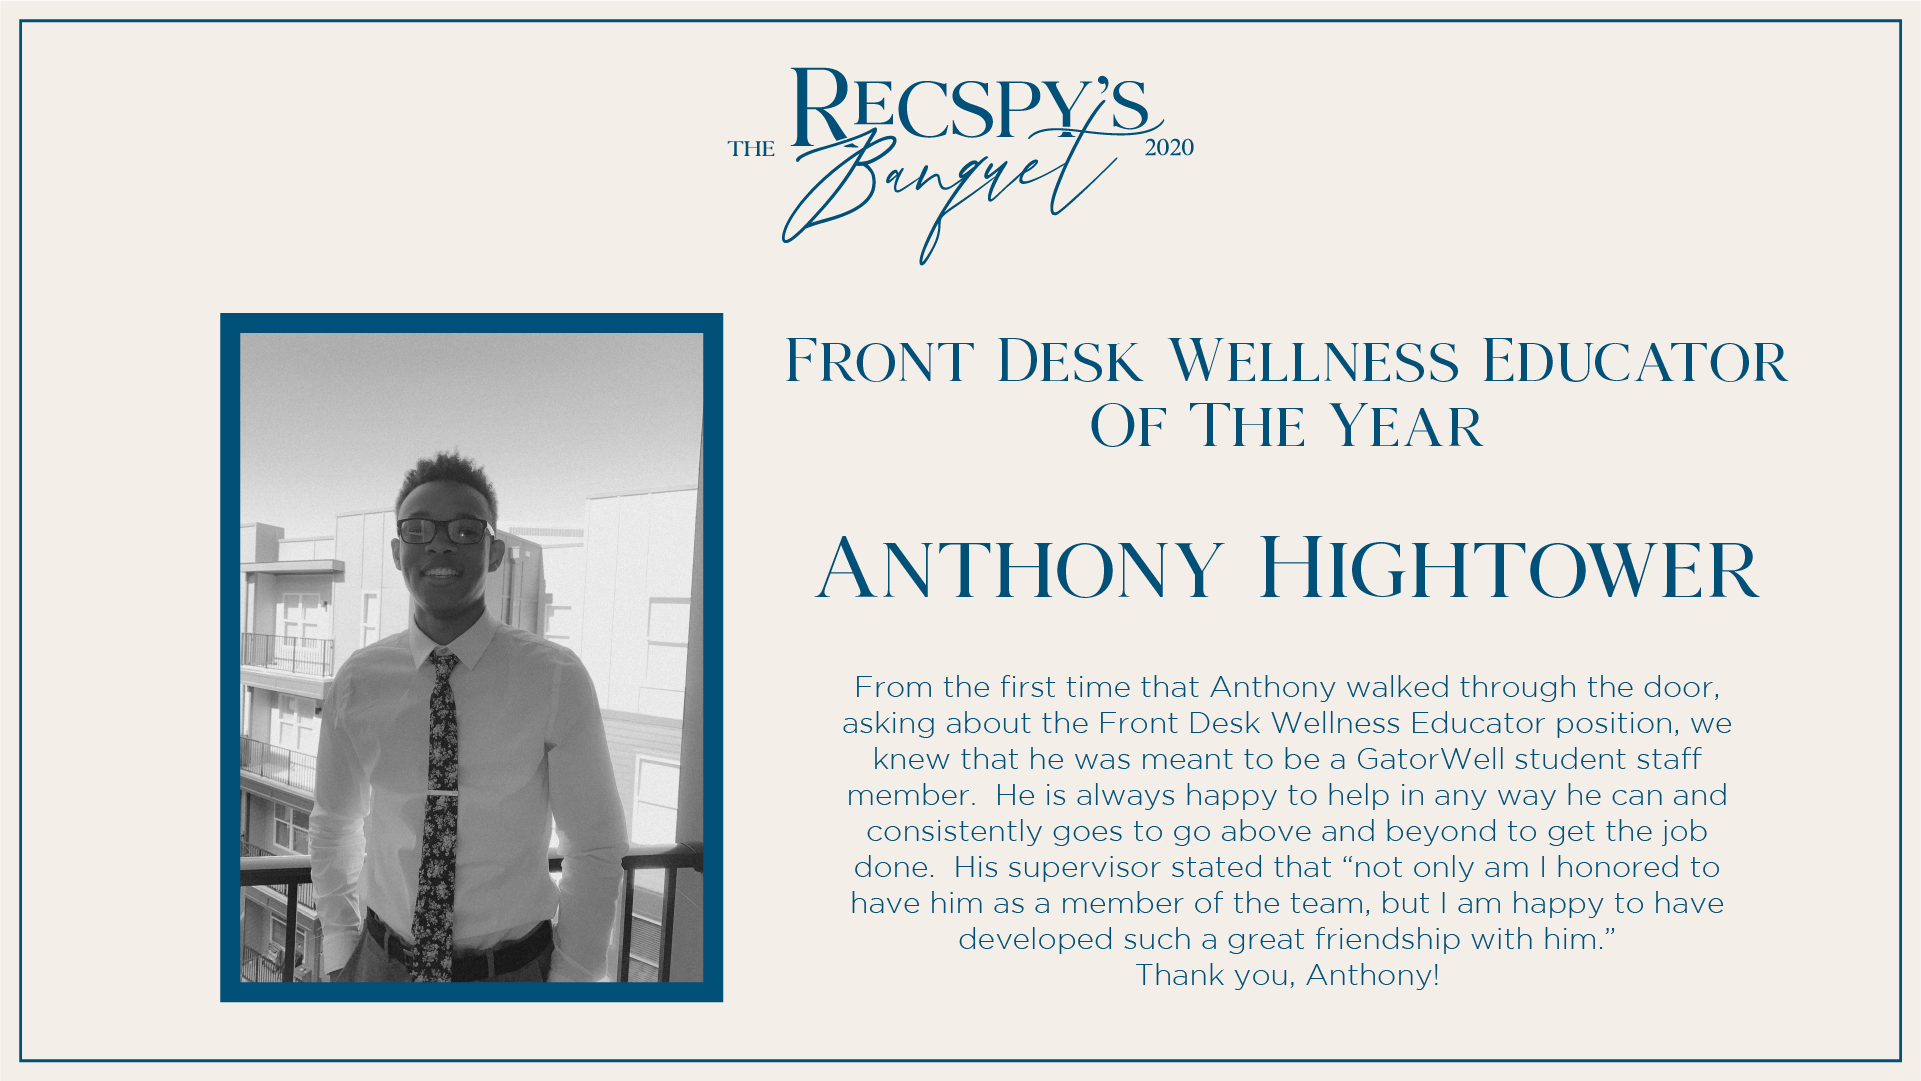 Anthony Hightower: Front Desk Wellness Educator of the Year